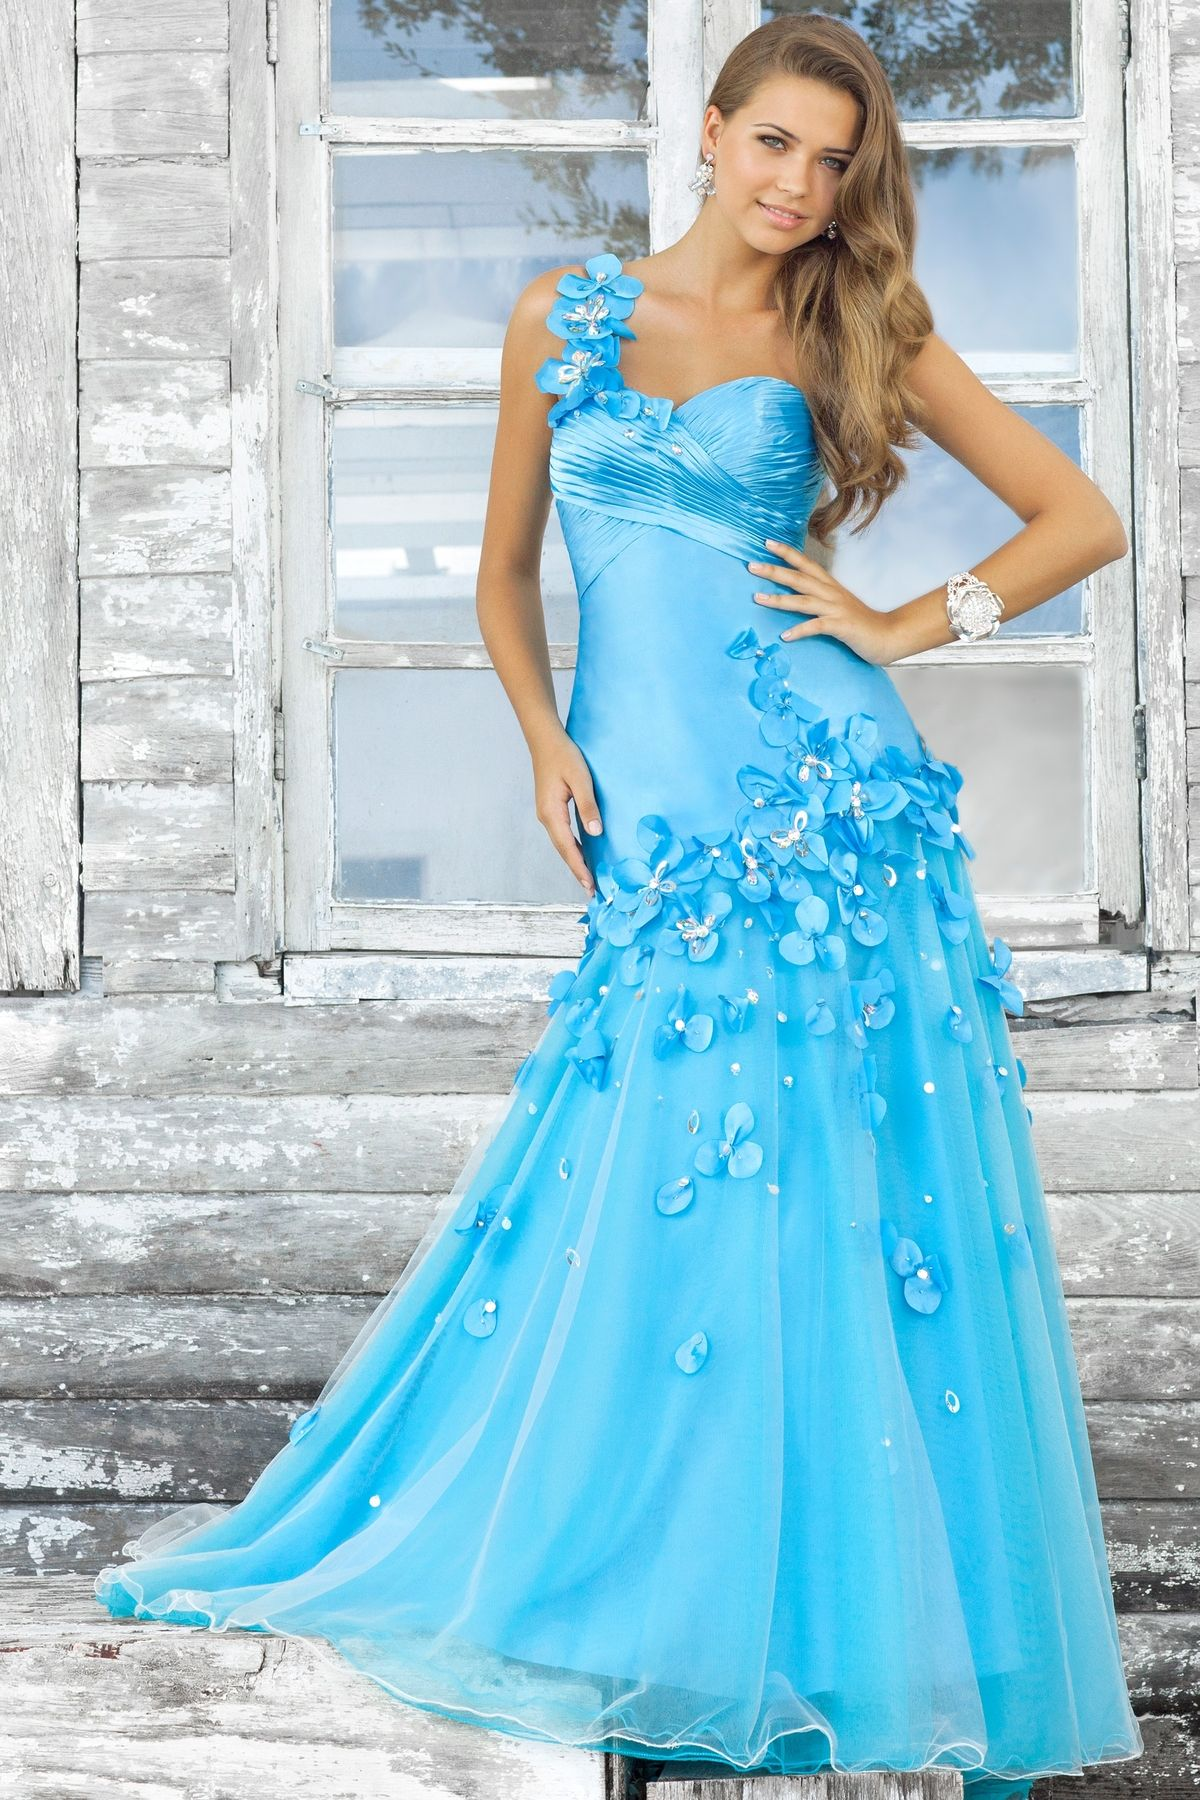 Luxury Sell Prom Dresses For Cash Online Ornament - Colorful Wedding ...